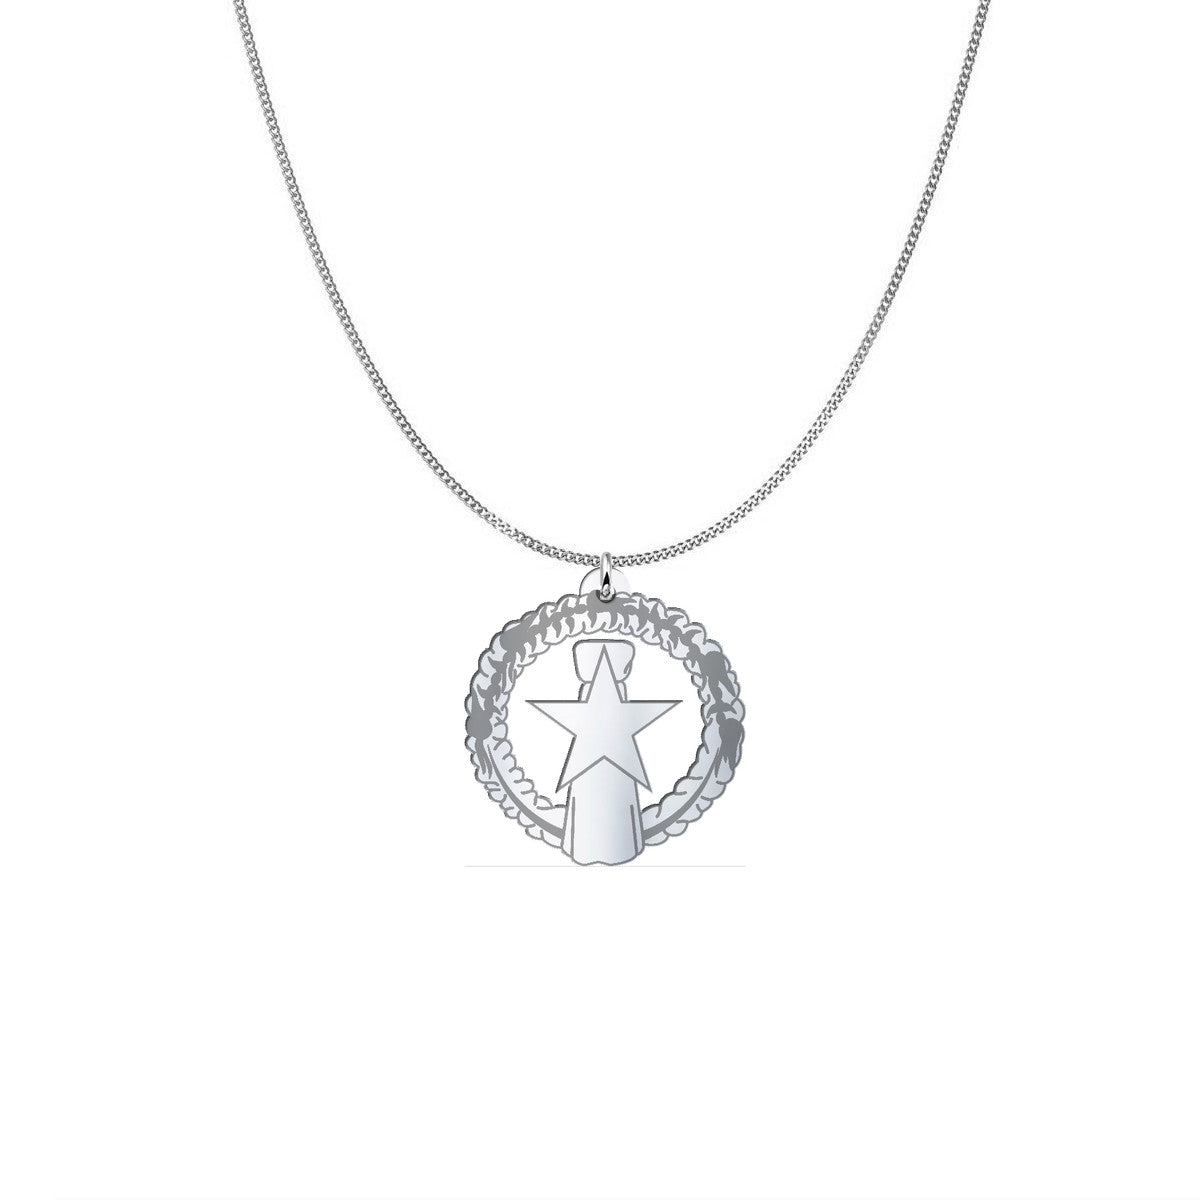 CNMI Seal Saipan Sterling Silver Necklace